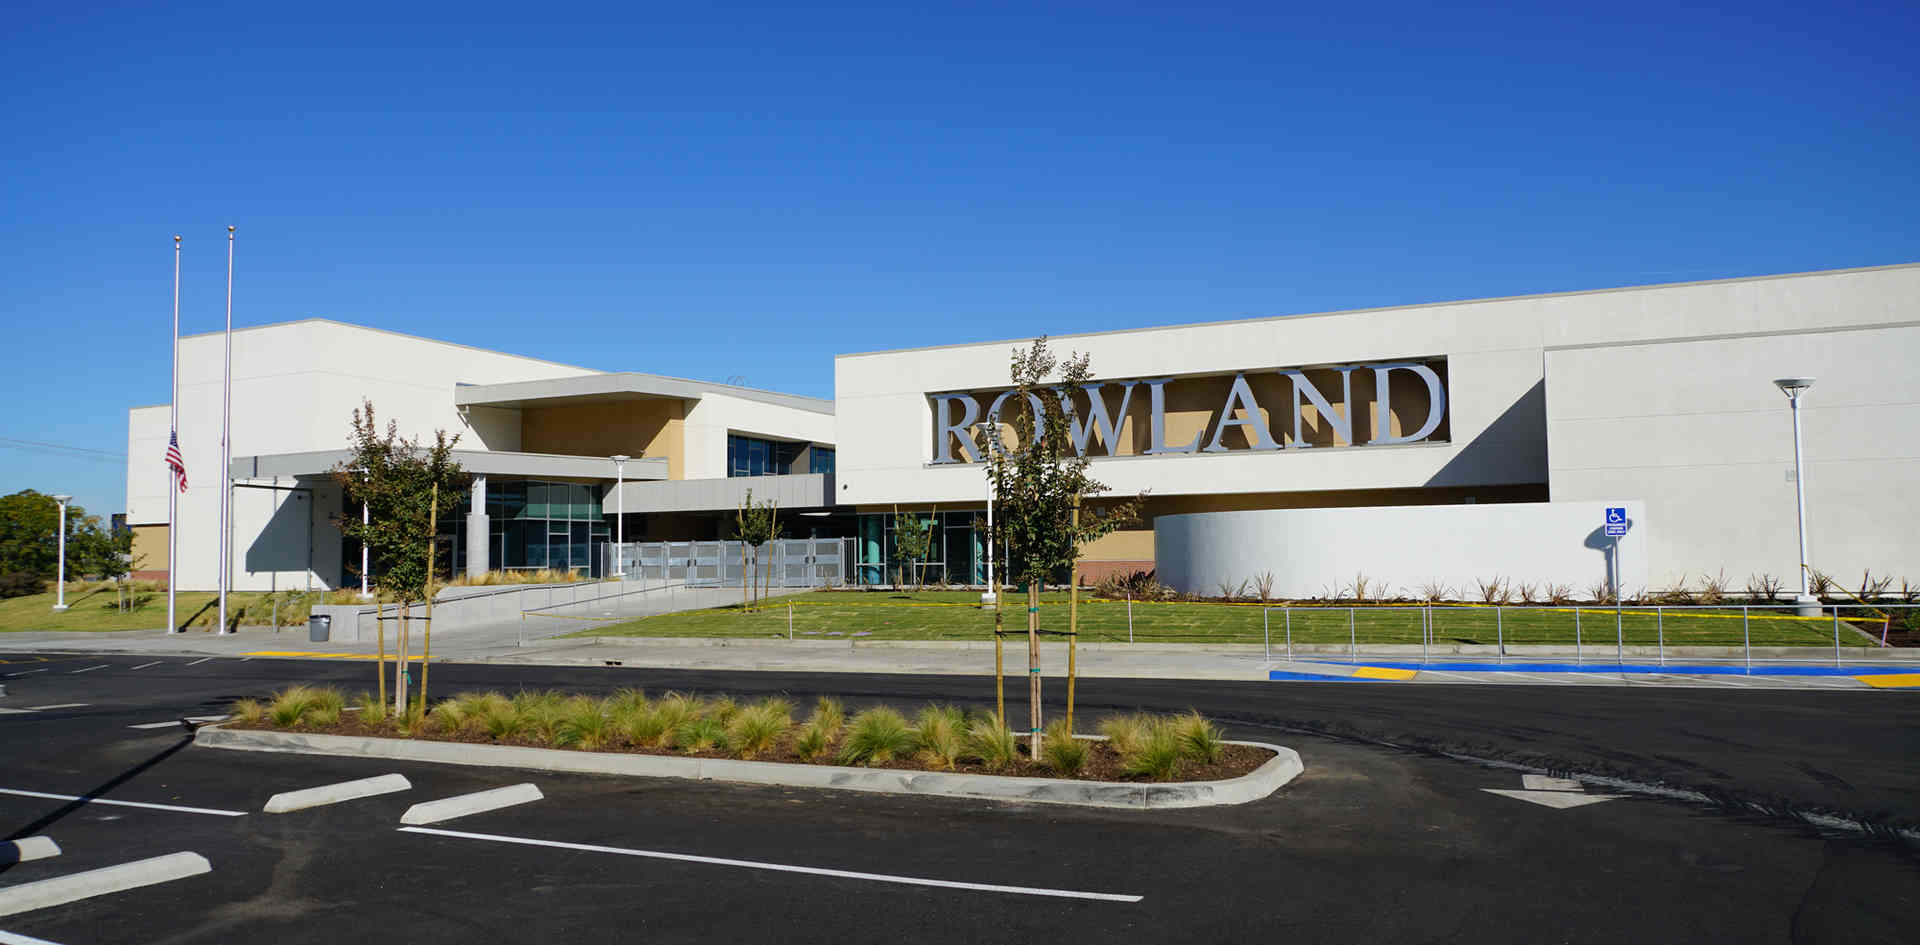 Rowland High School